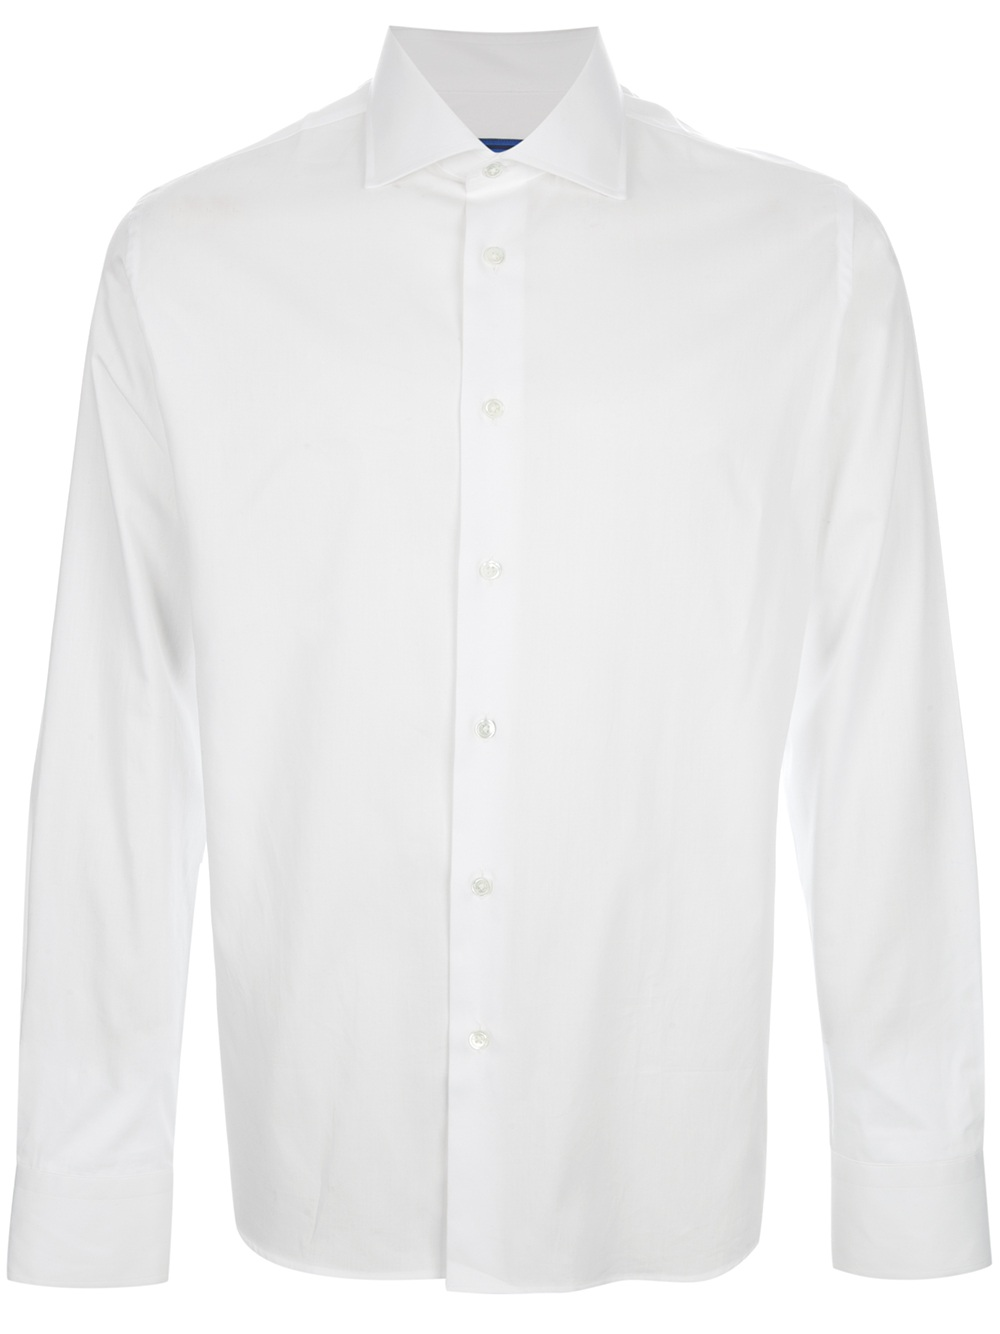 Stephen f cutaway collar shirt in white for men lyst for White cutaway collar shirt